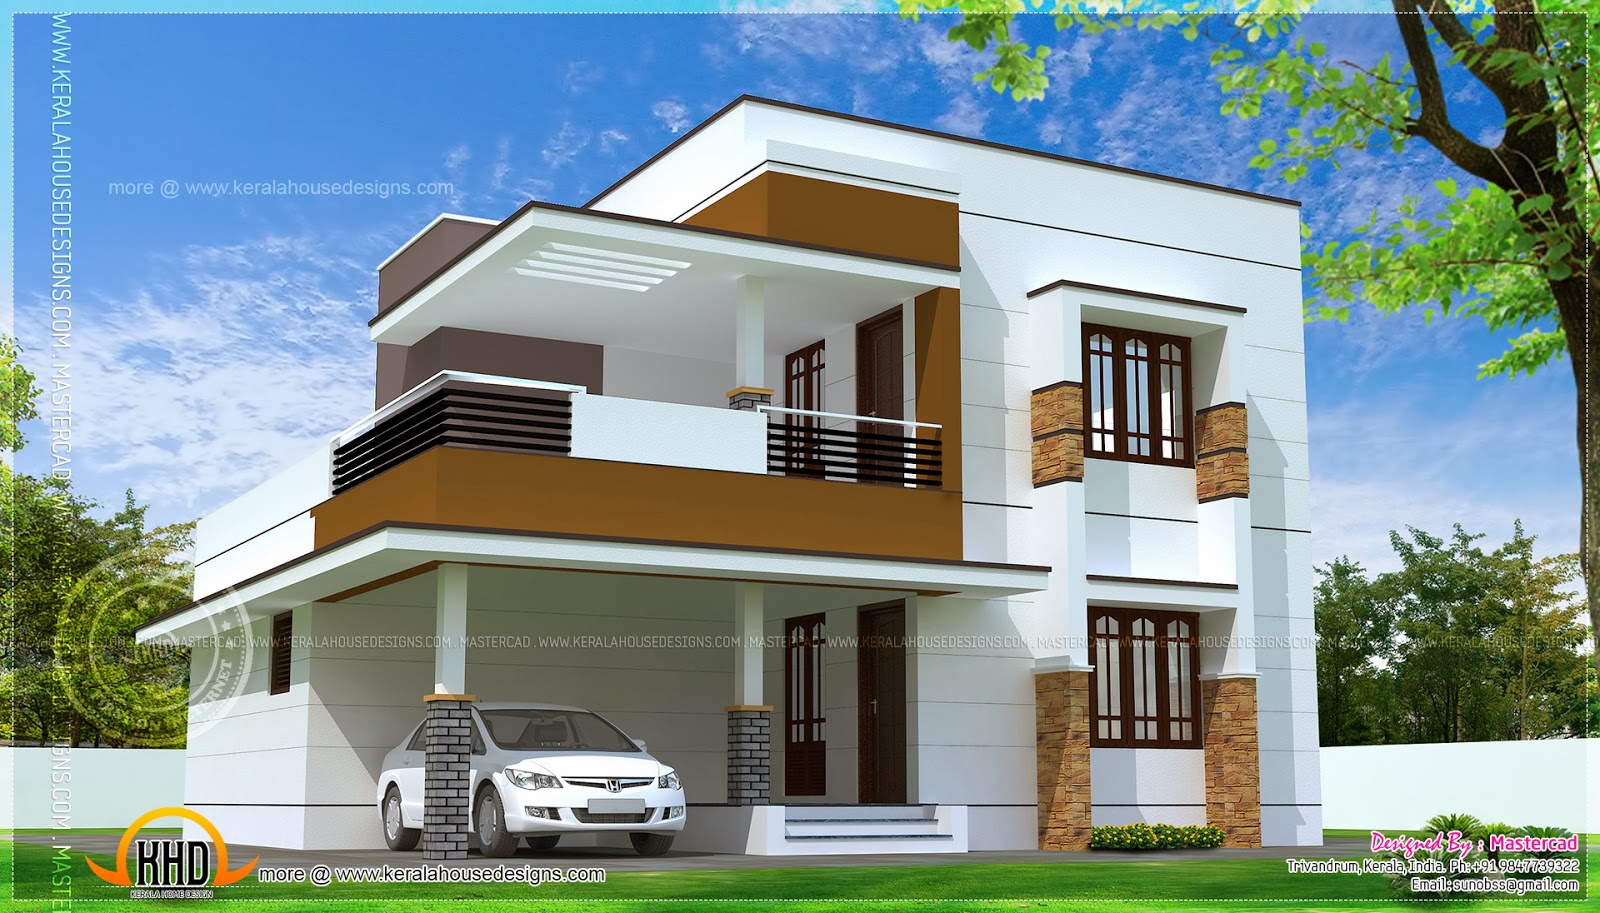 November 2013 kerala home design and floor plans Contemporary home design